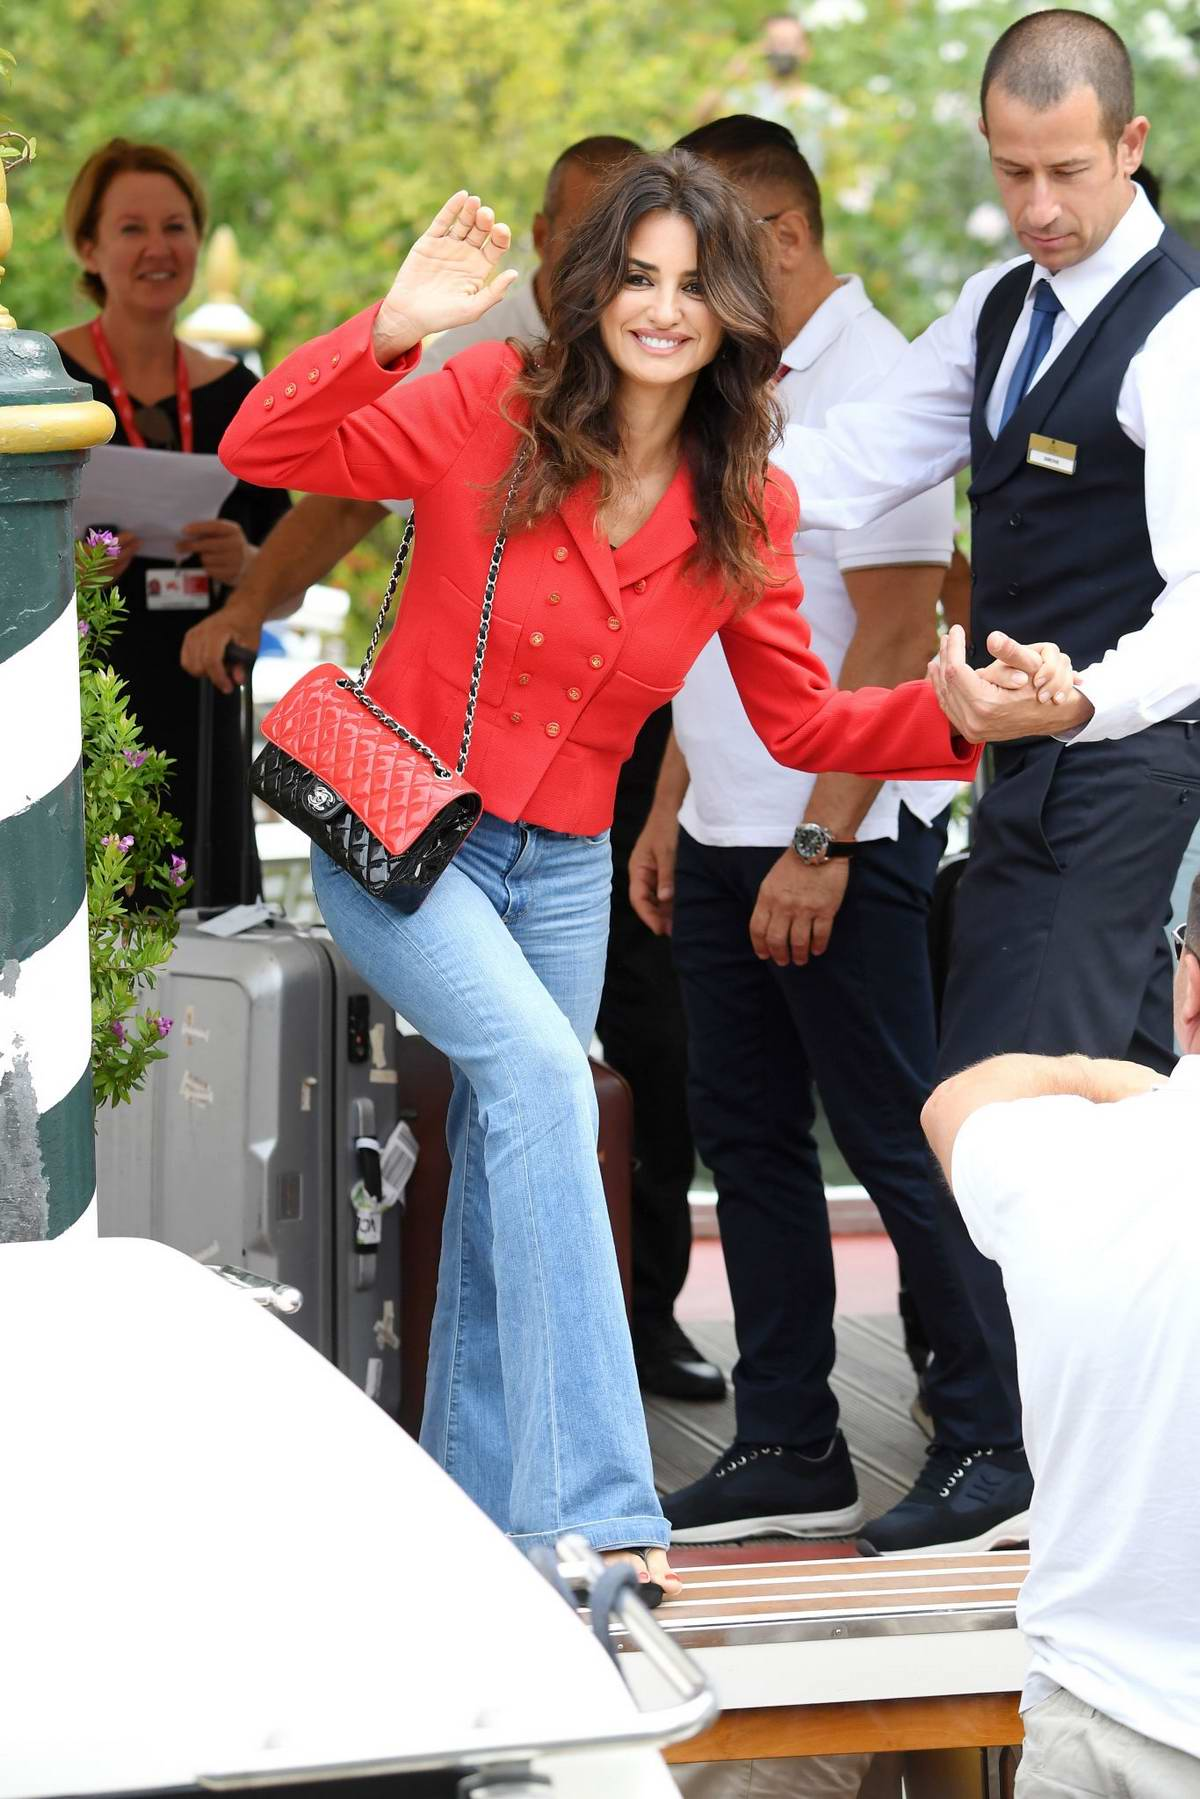 Penelope Cruz is all smiles as she steps out during the 76th Venice Film Festival in Venice, Italy